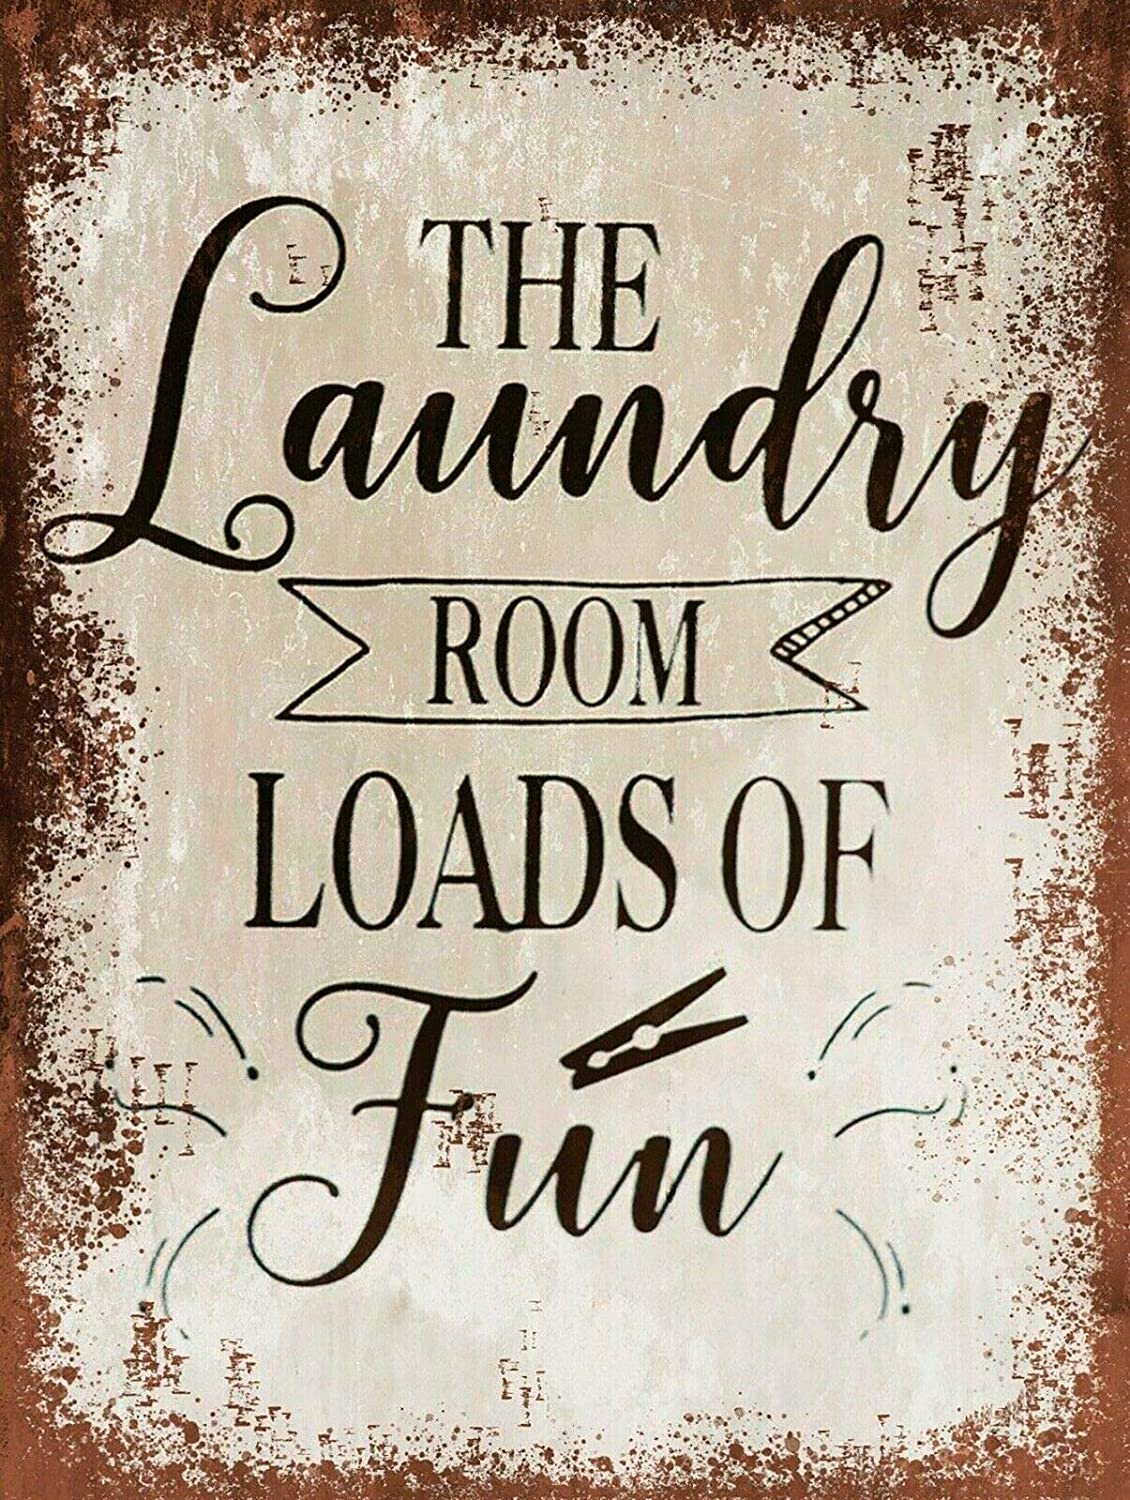 The Laundry Room, Retro Replica Vintage Style Metal Sign Plaque Gift